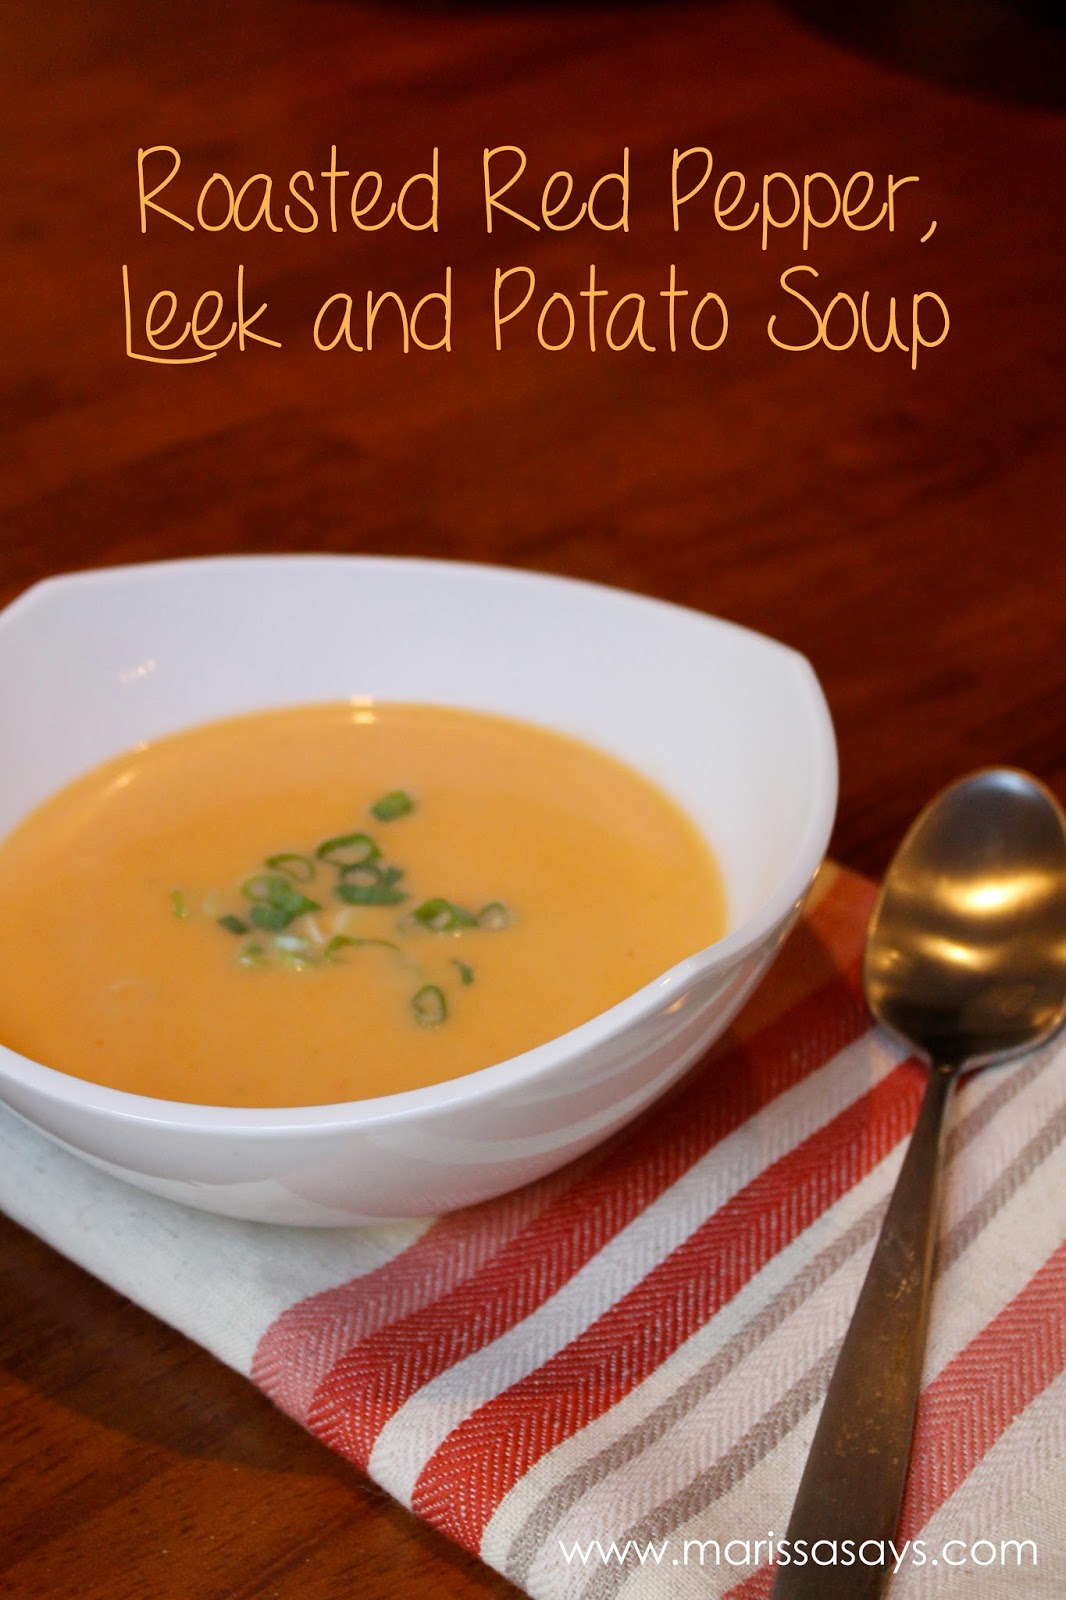 ... Says... | A Lifestyle Blog: Roasted red pepper, leek and potato soup